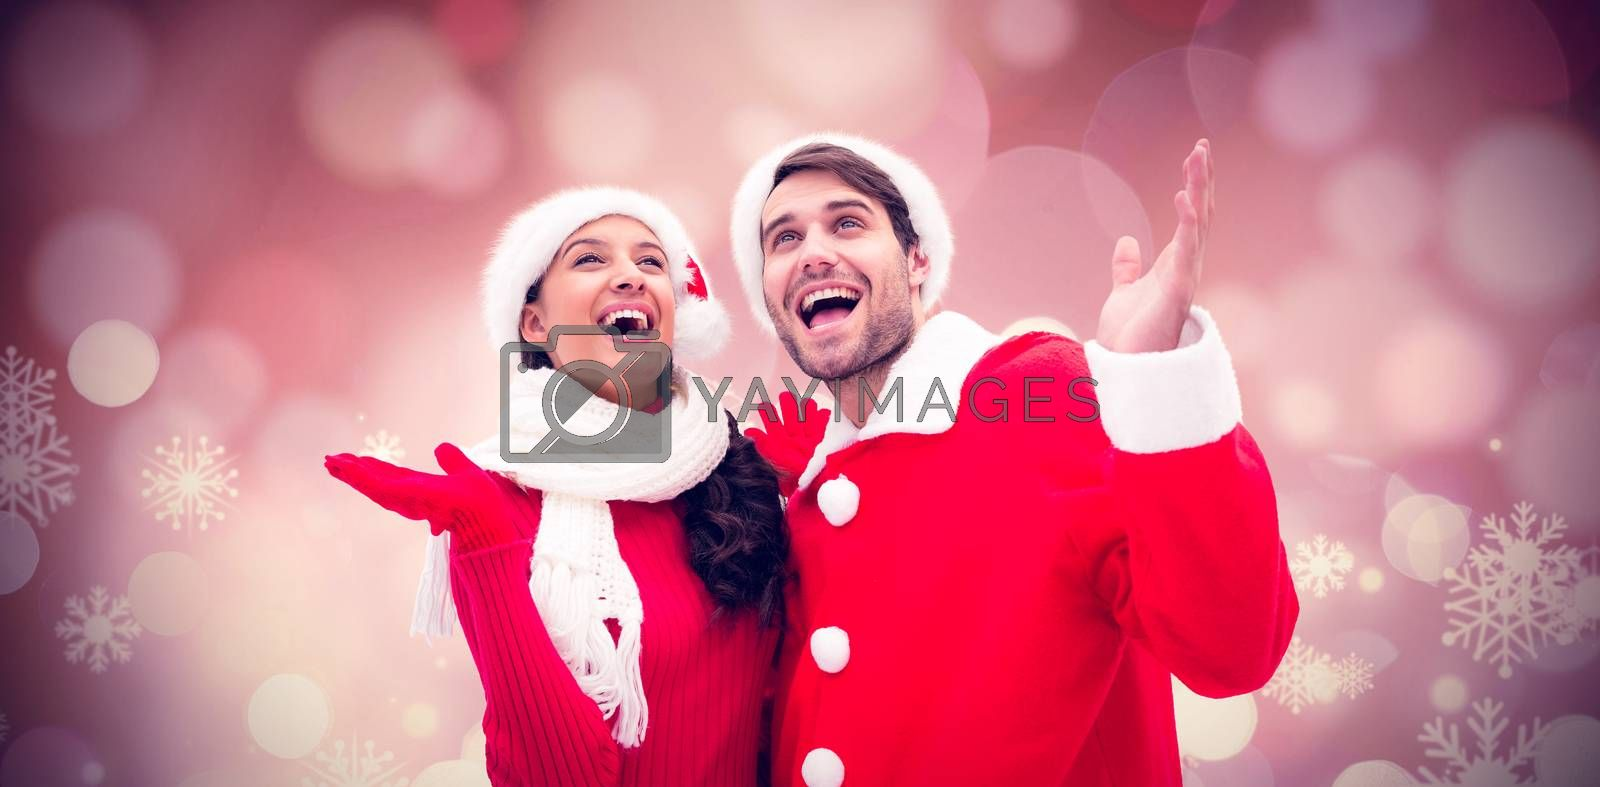 Festive young couple against glowing christmas background